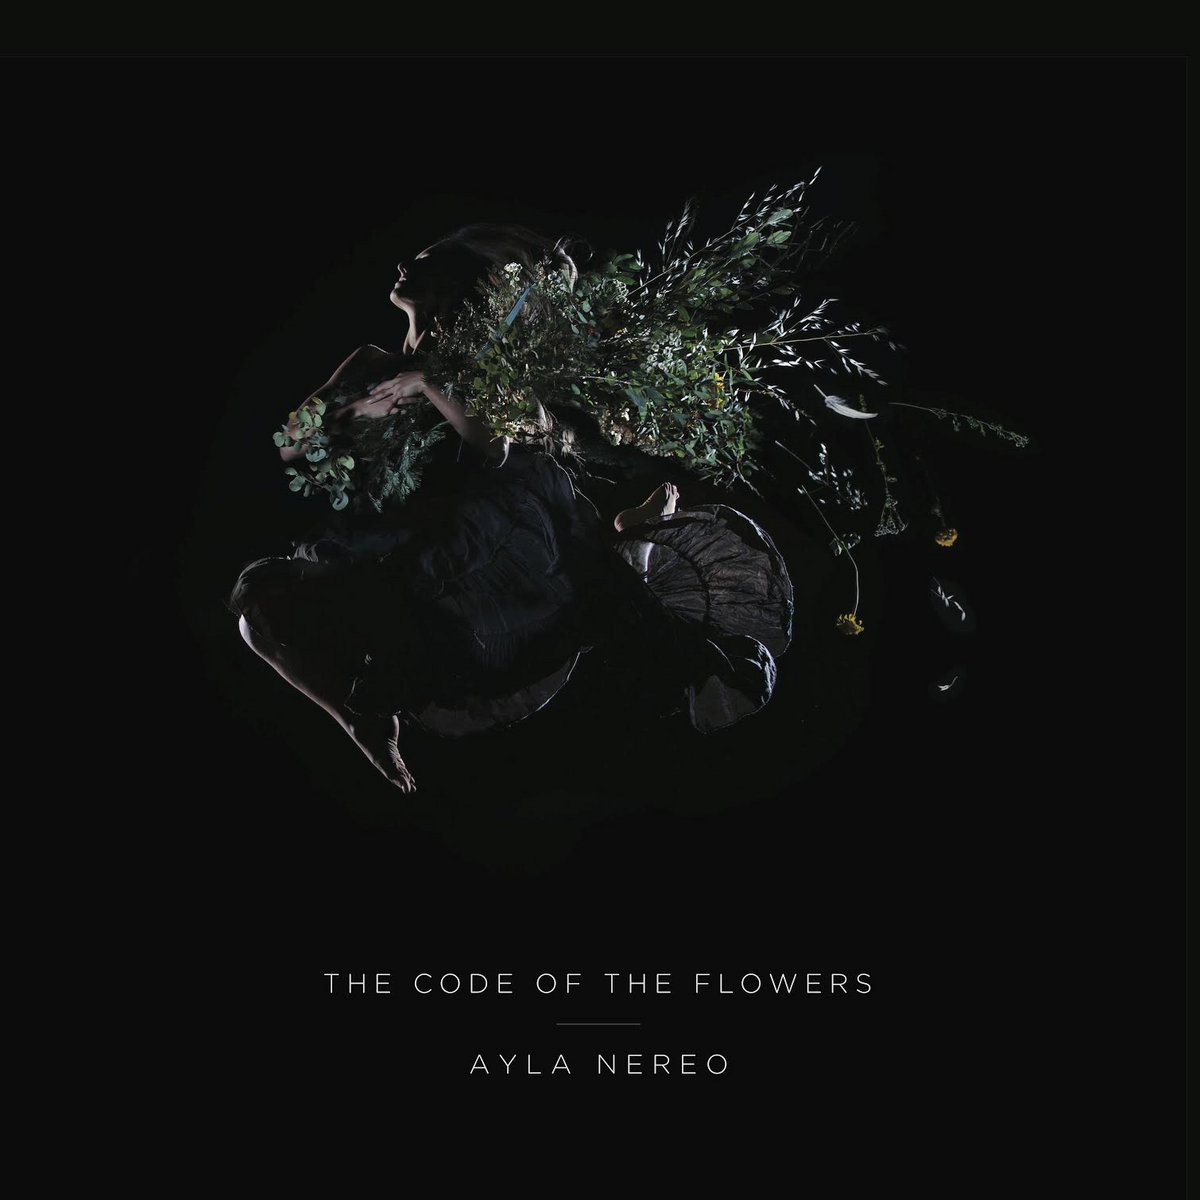 Of The Flowers